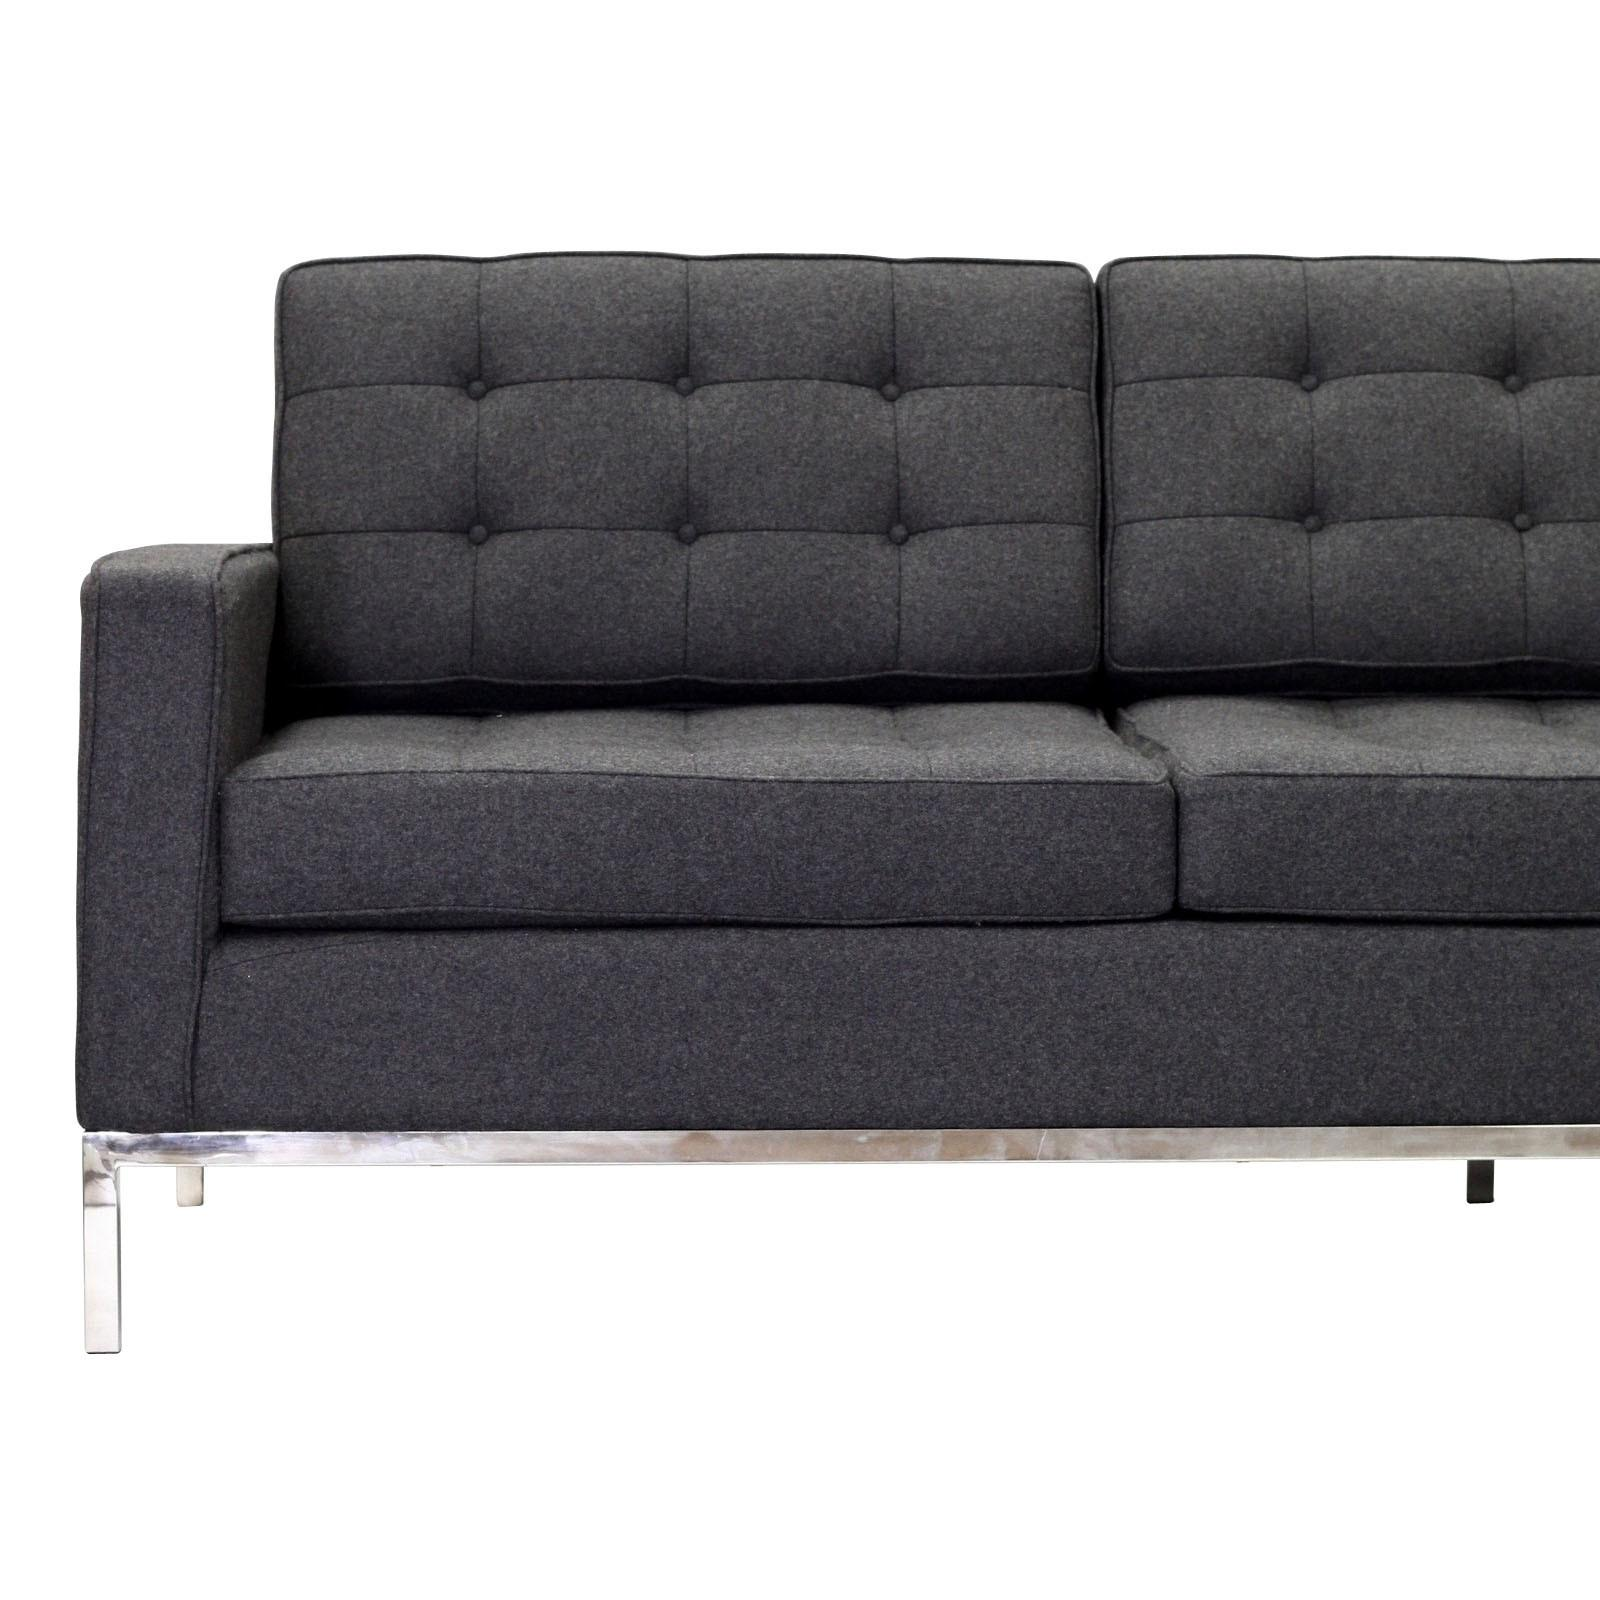 Copious Grey Tufted Sofa Simple Designs Added Chrome